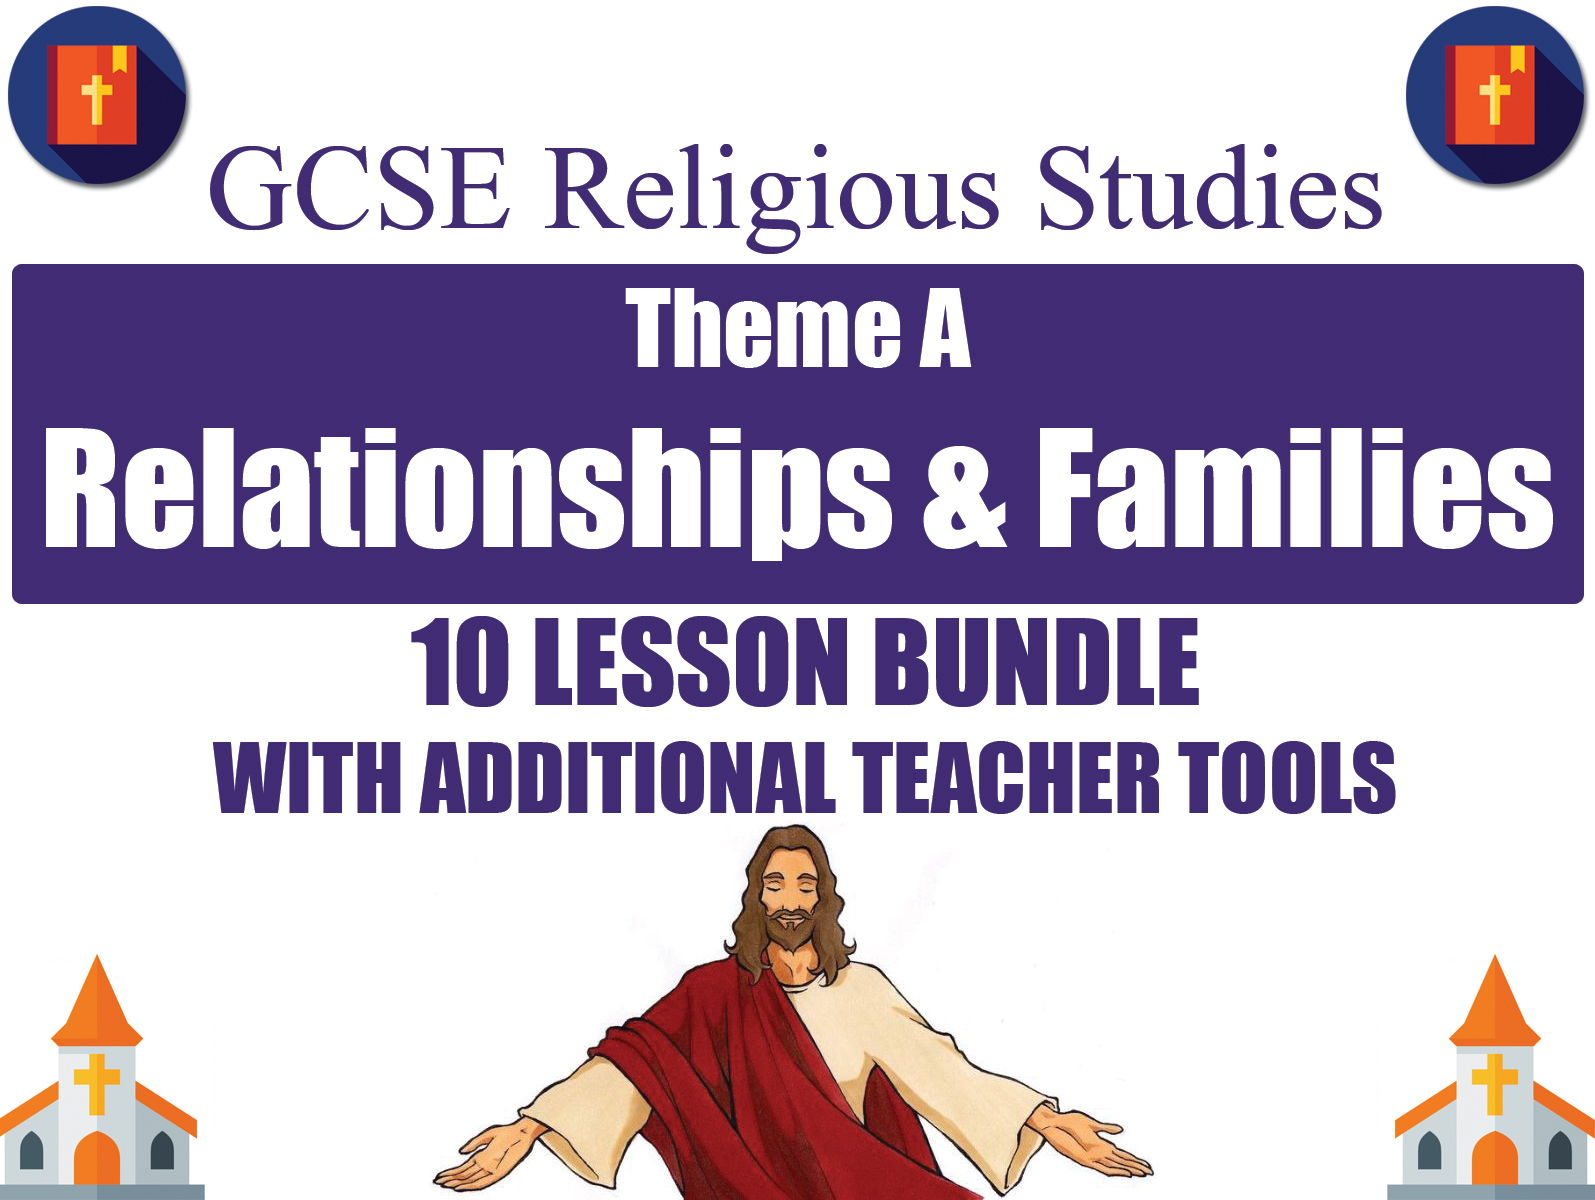 Relationships & Families (10 Lesson Unit) (AQA GCSE Religious Studies)